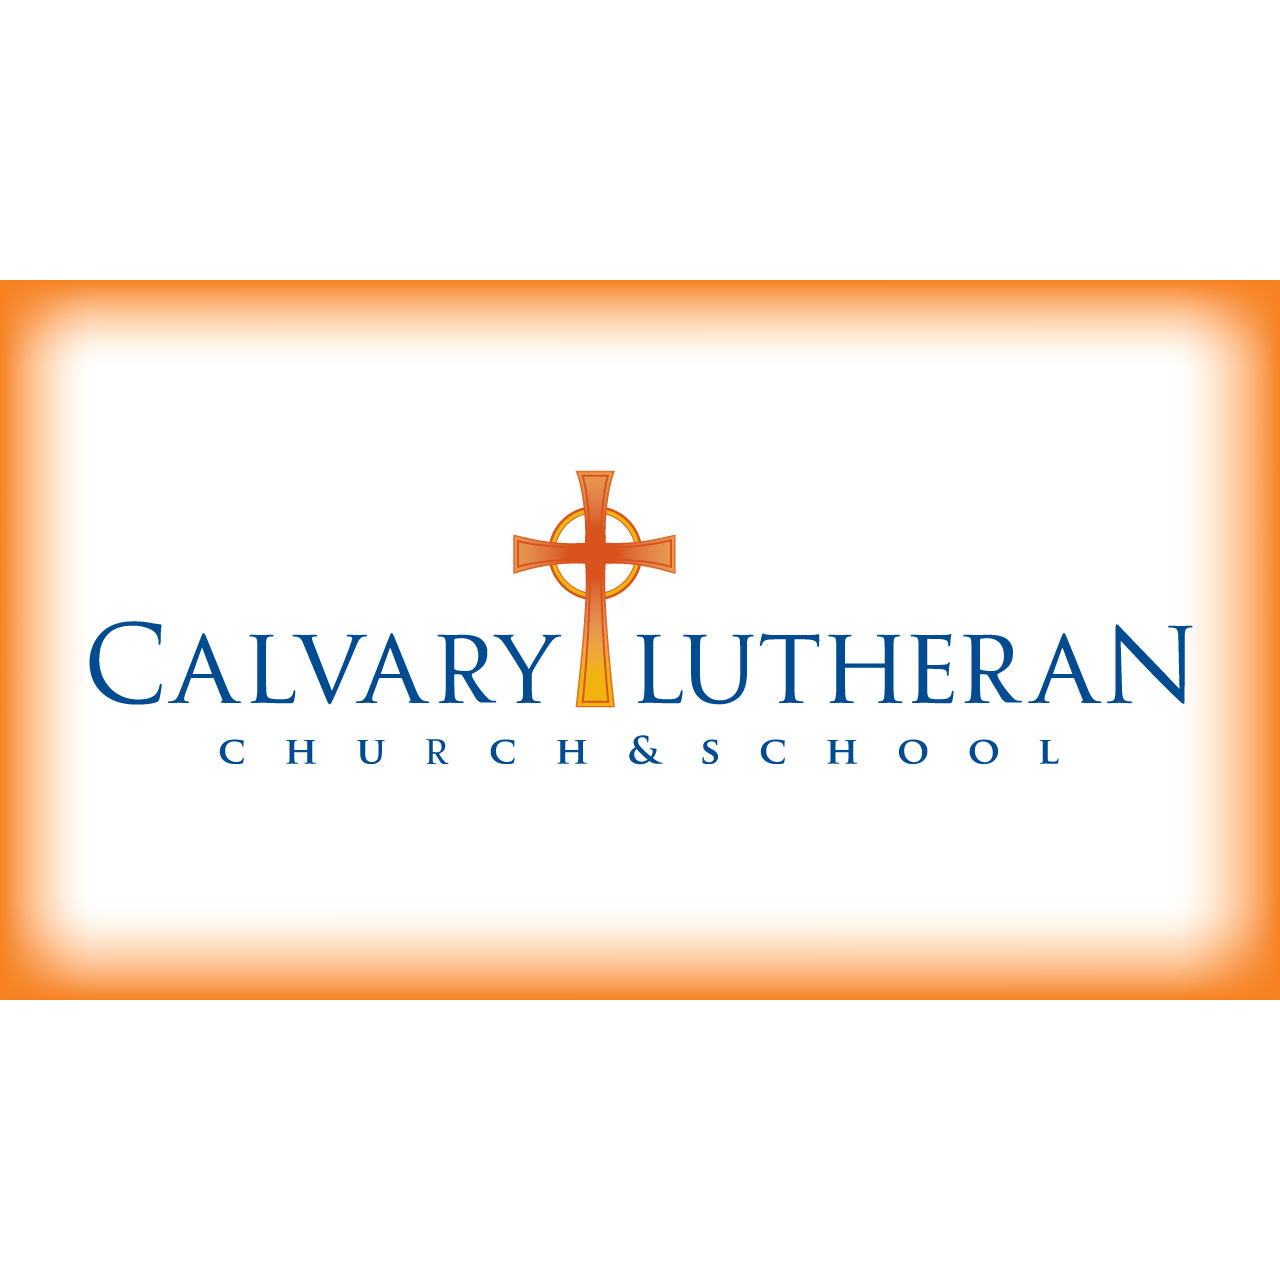 Calvary Lutheran Church Amp School In Kansas City Mo